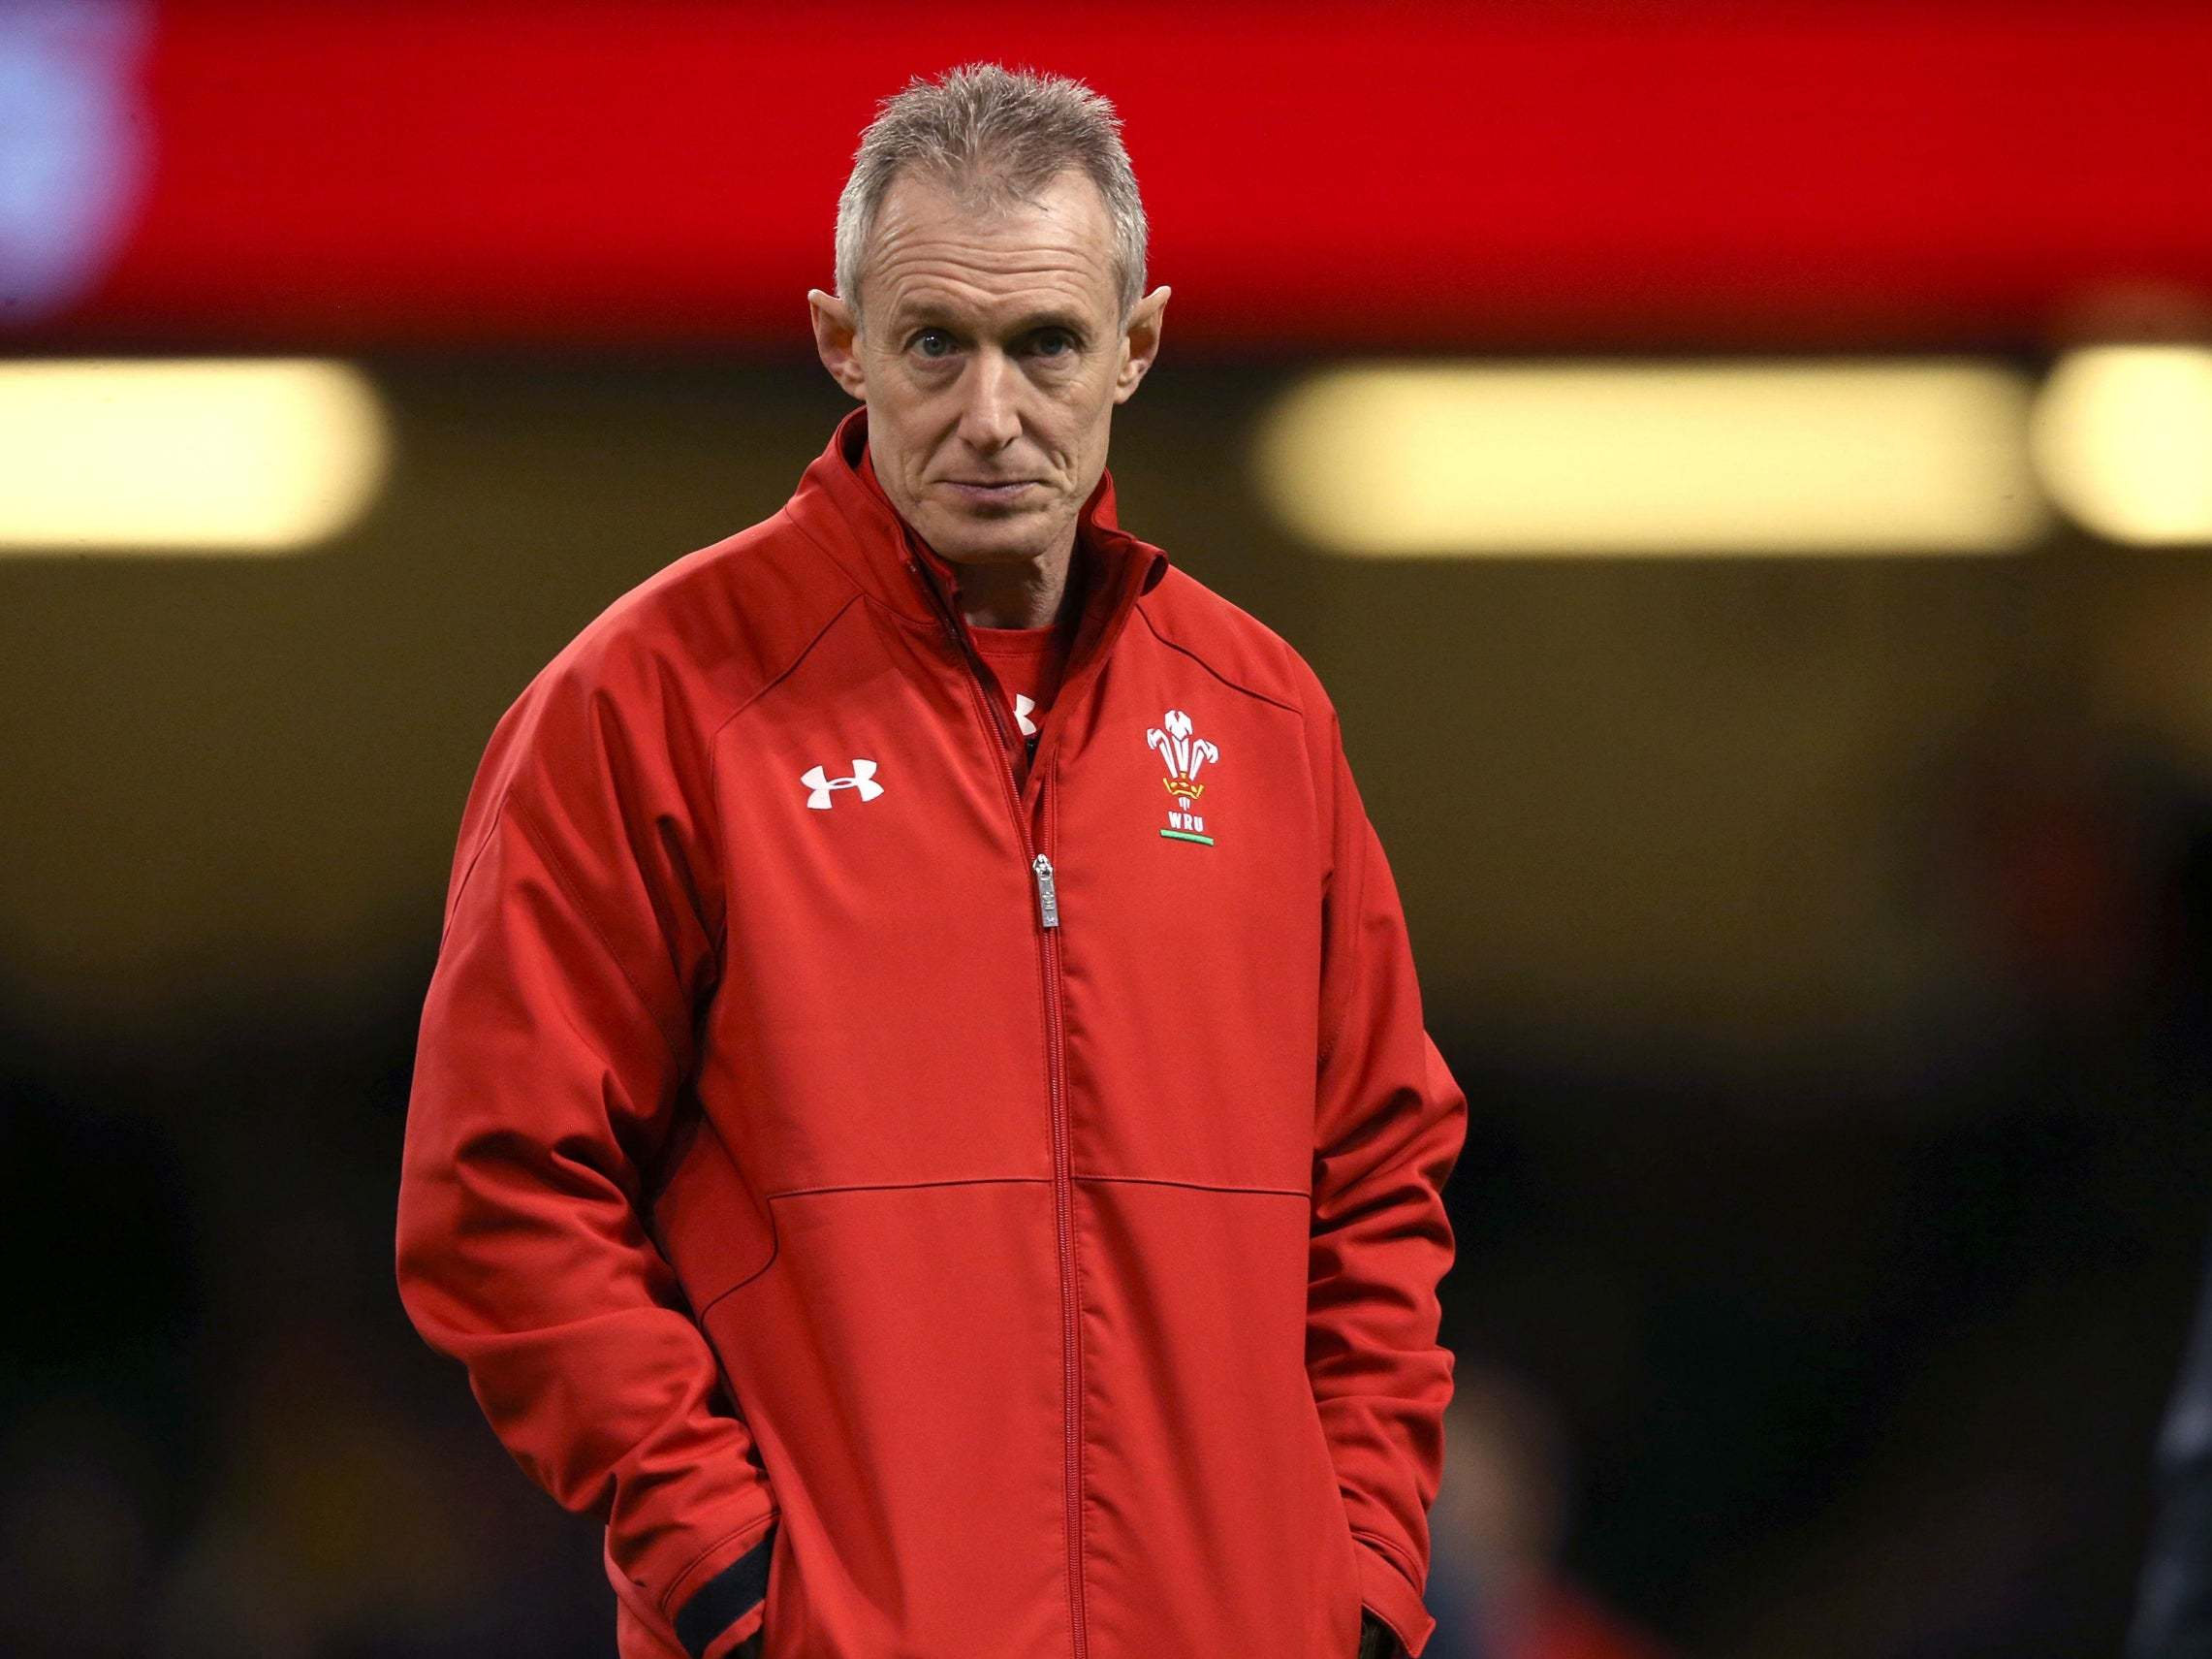 Rob Howley apologises after receiving ban for betting on rugby